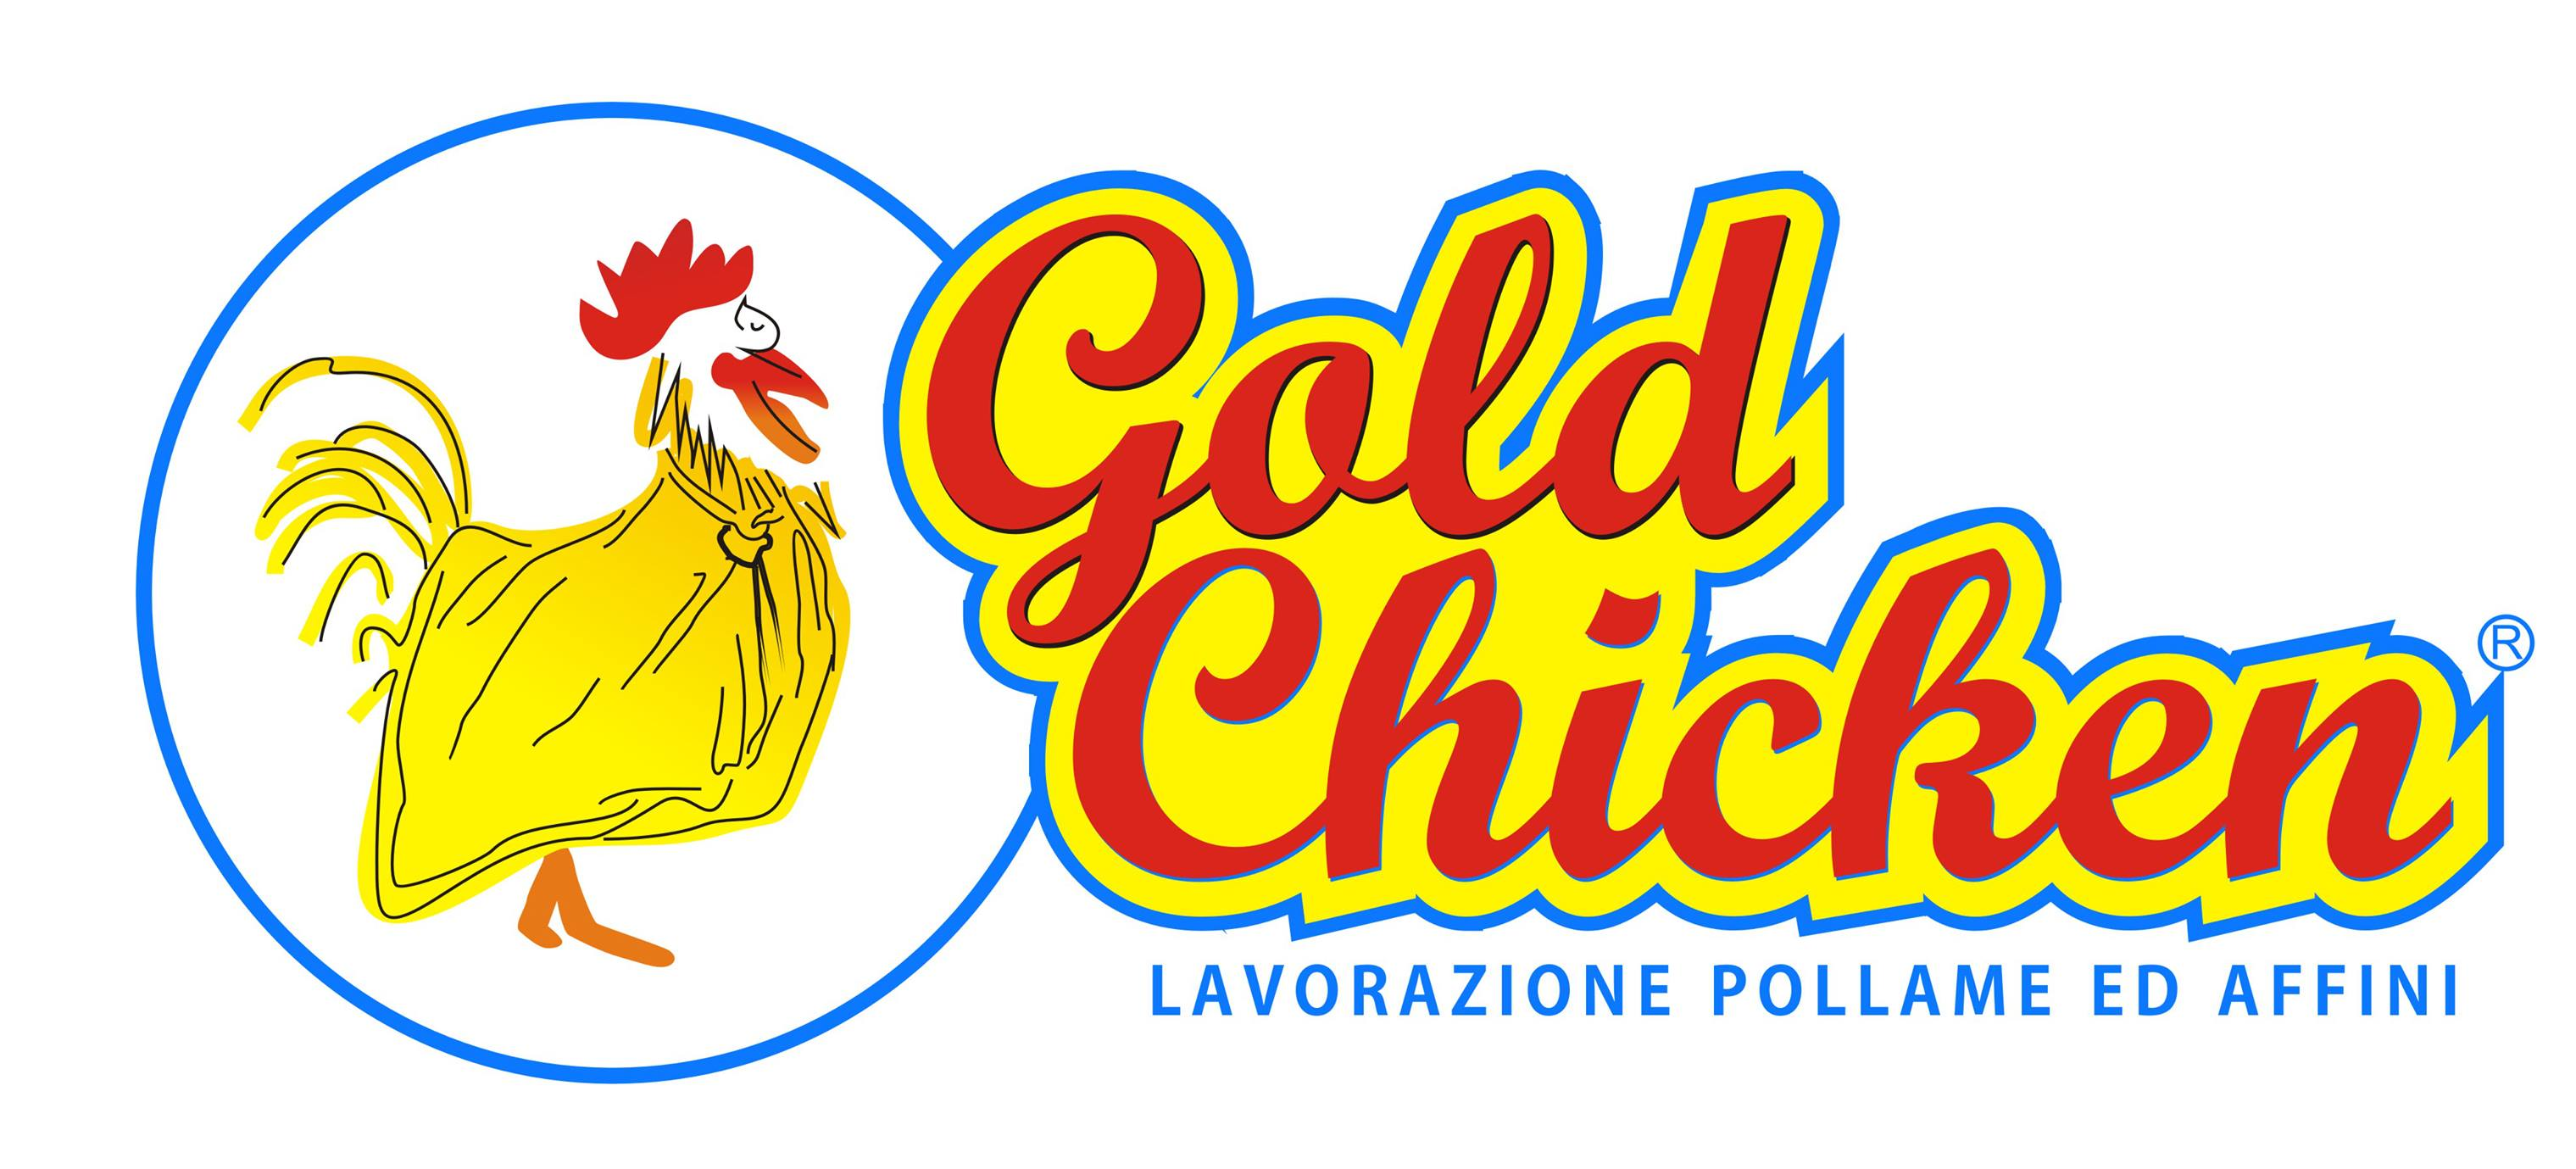 SPONSOR Gold Chicken